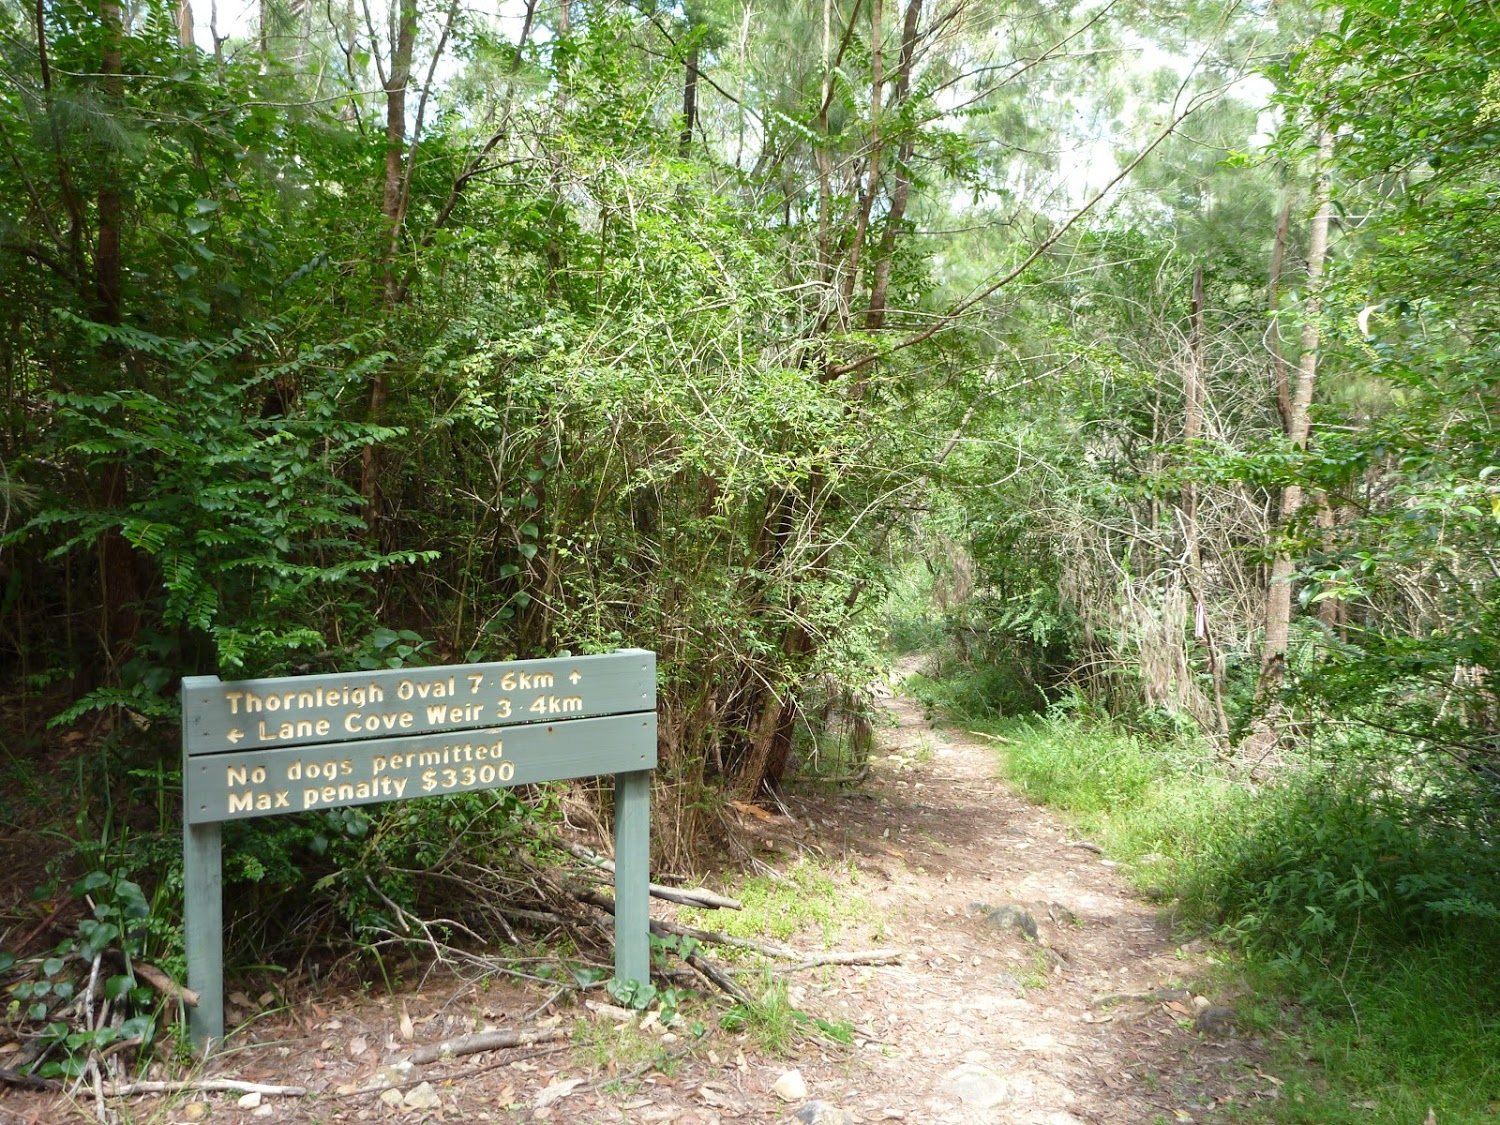 MM_20110120_003530_Well signposted section in Lane Cove NP